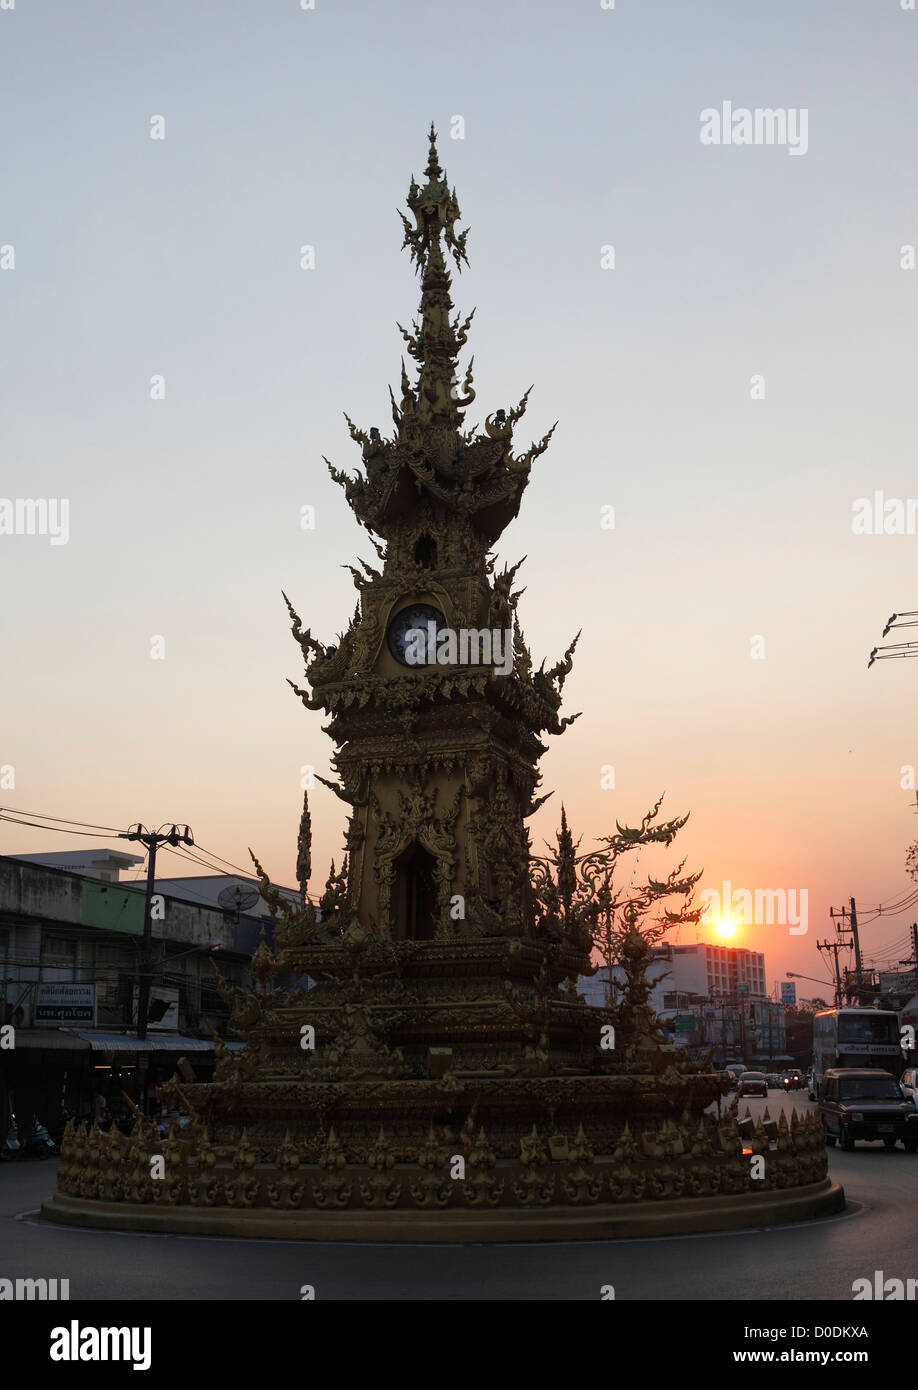 Golden clock tower in Chiang Rai, Thailand, Asia Stock Photo